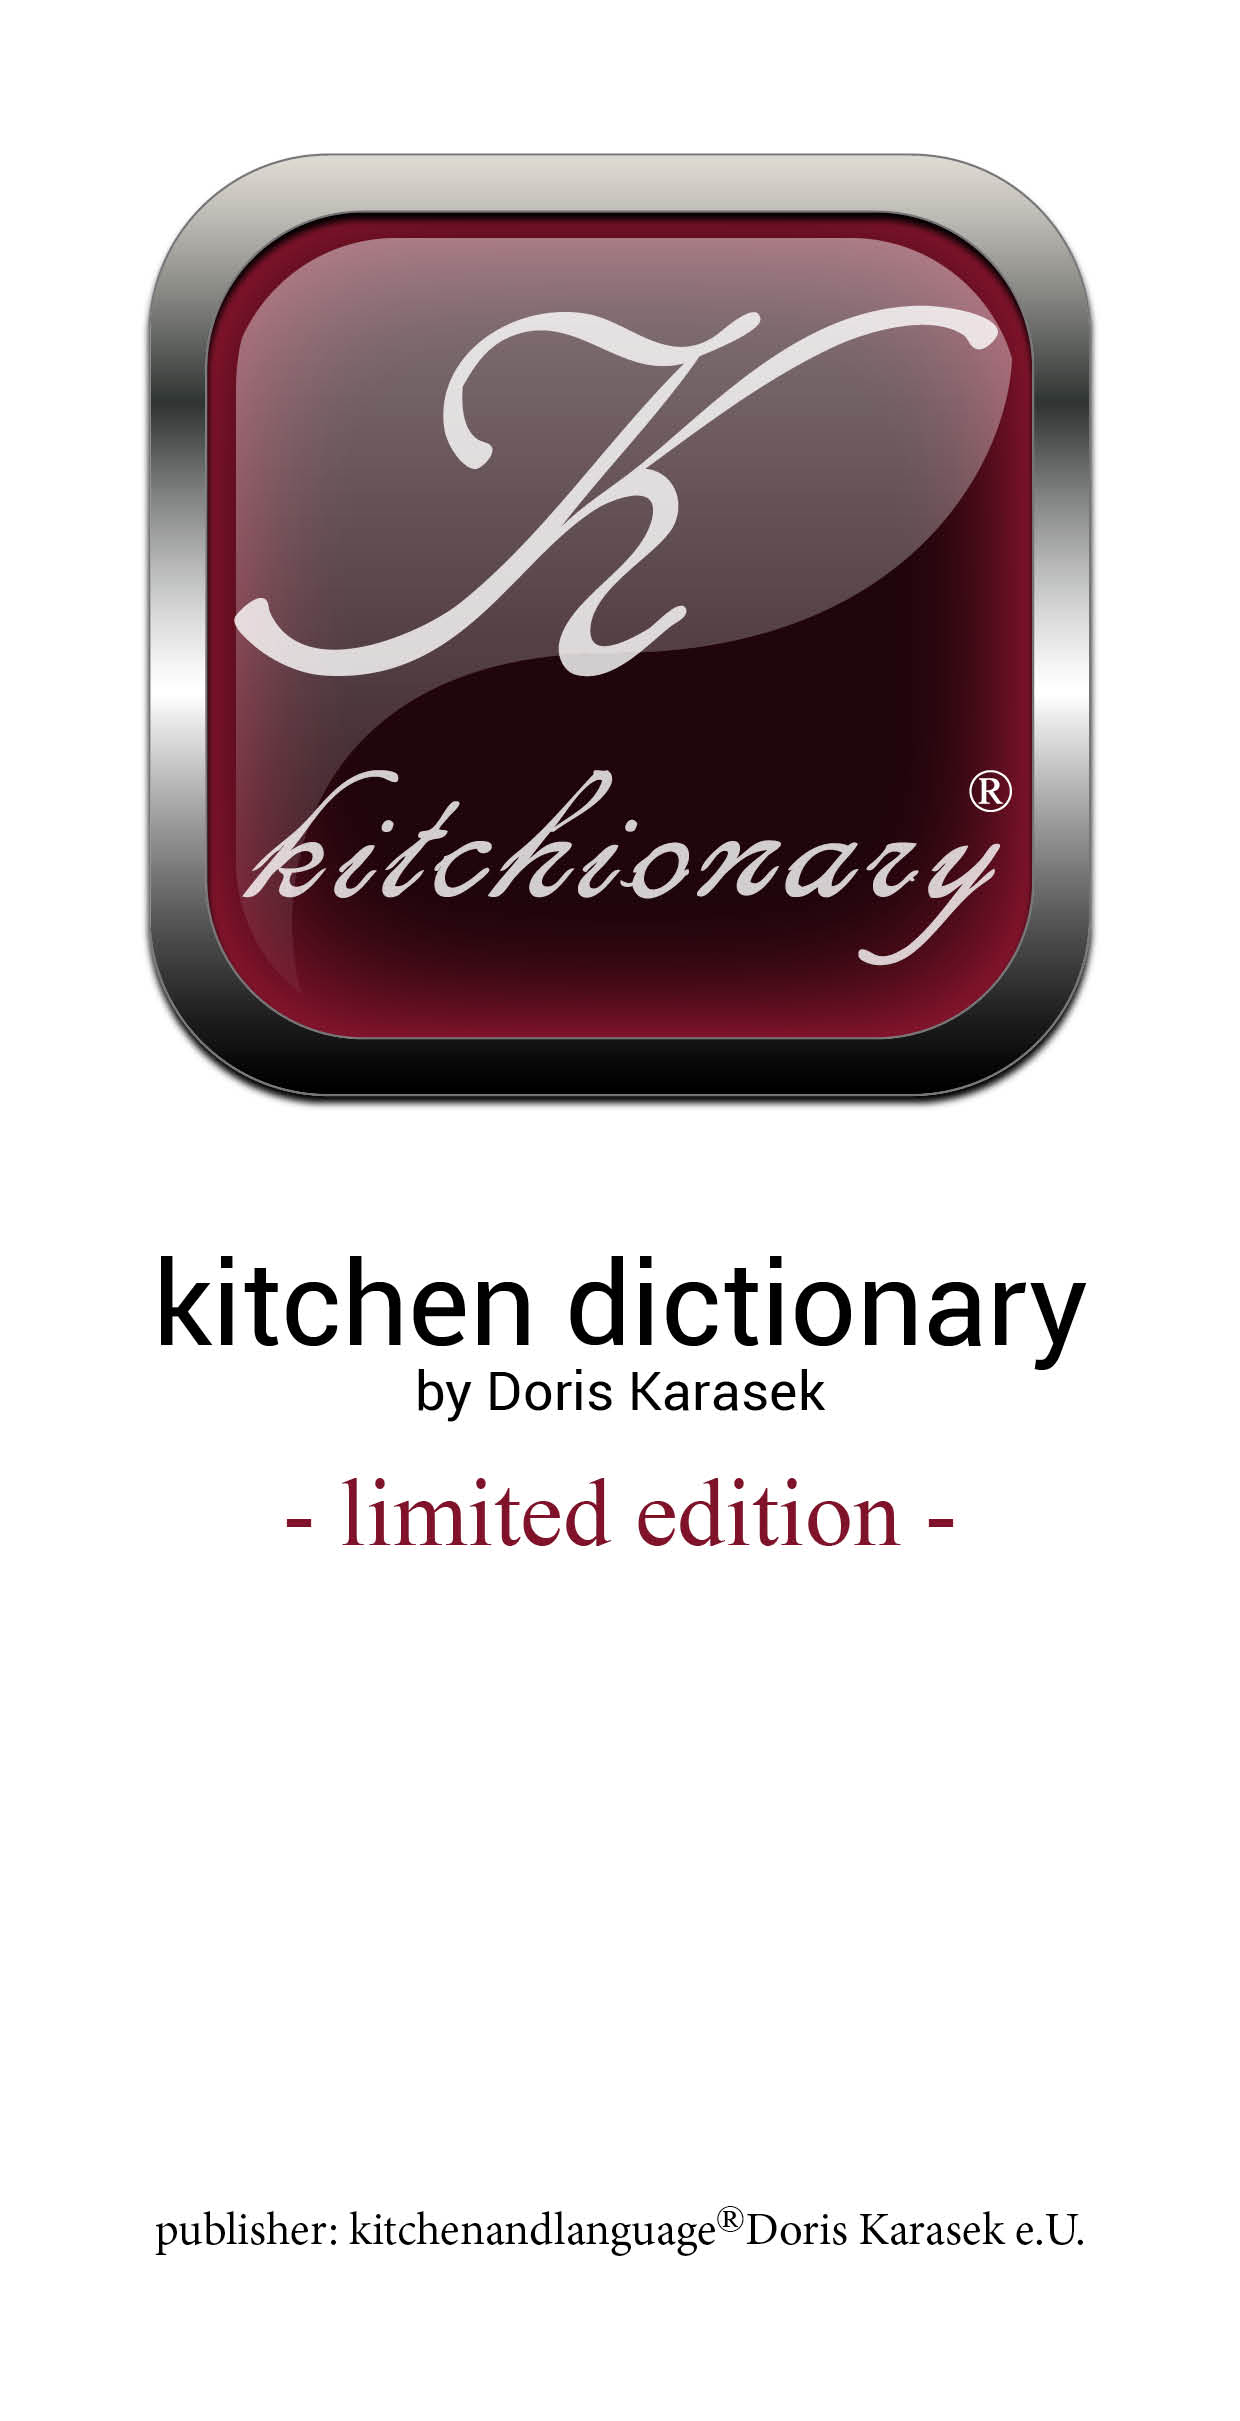 Cover zu kitchionary-kitchen dictionary